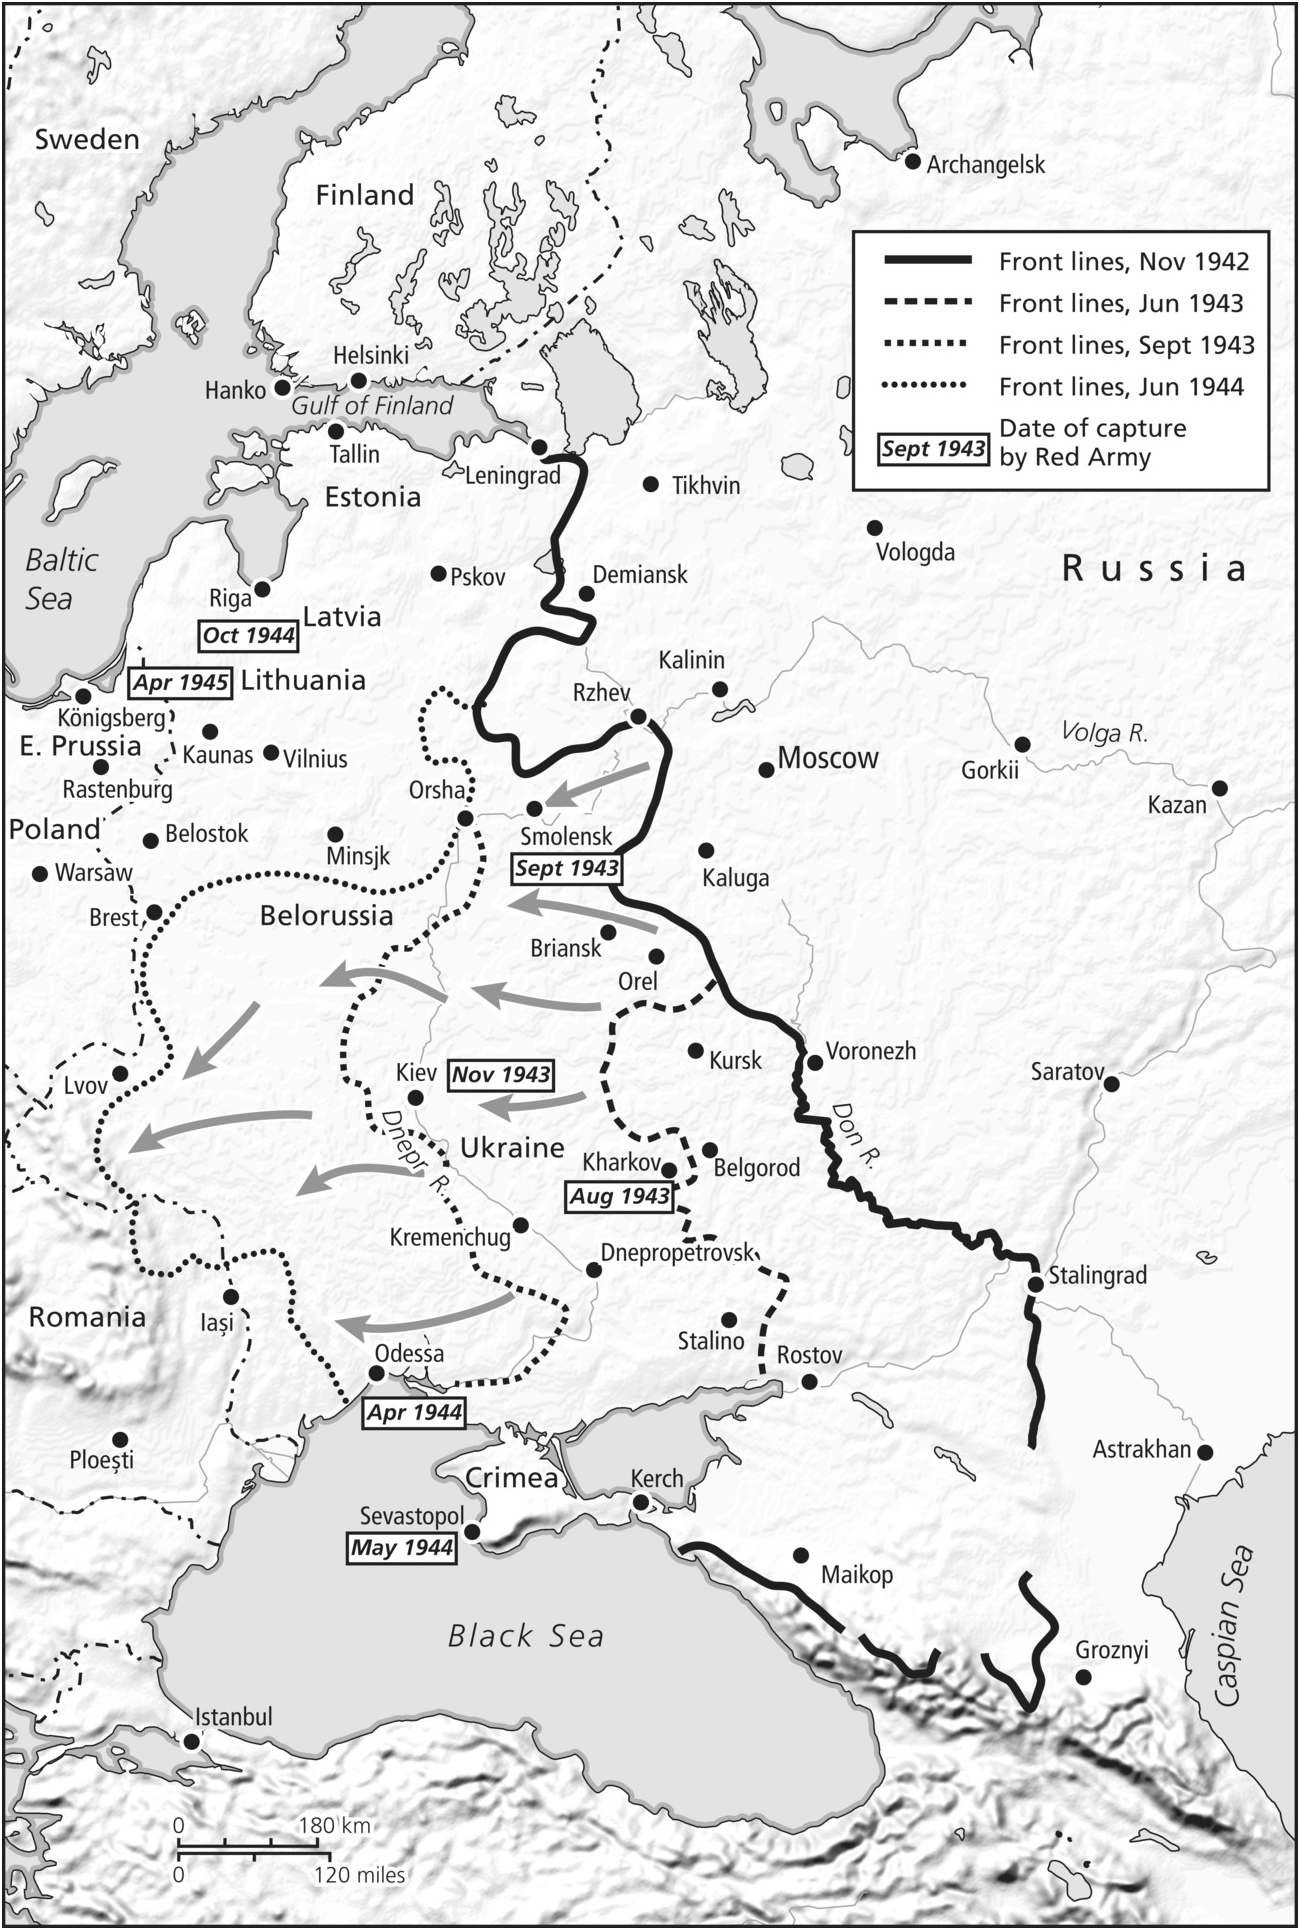 Operations On The Eastern Front 1941 1945 Chapter 12 The Cambridge History Of The Second World War